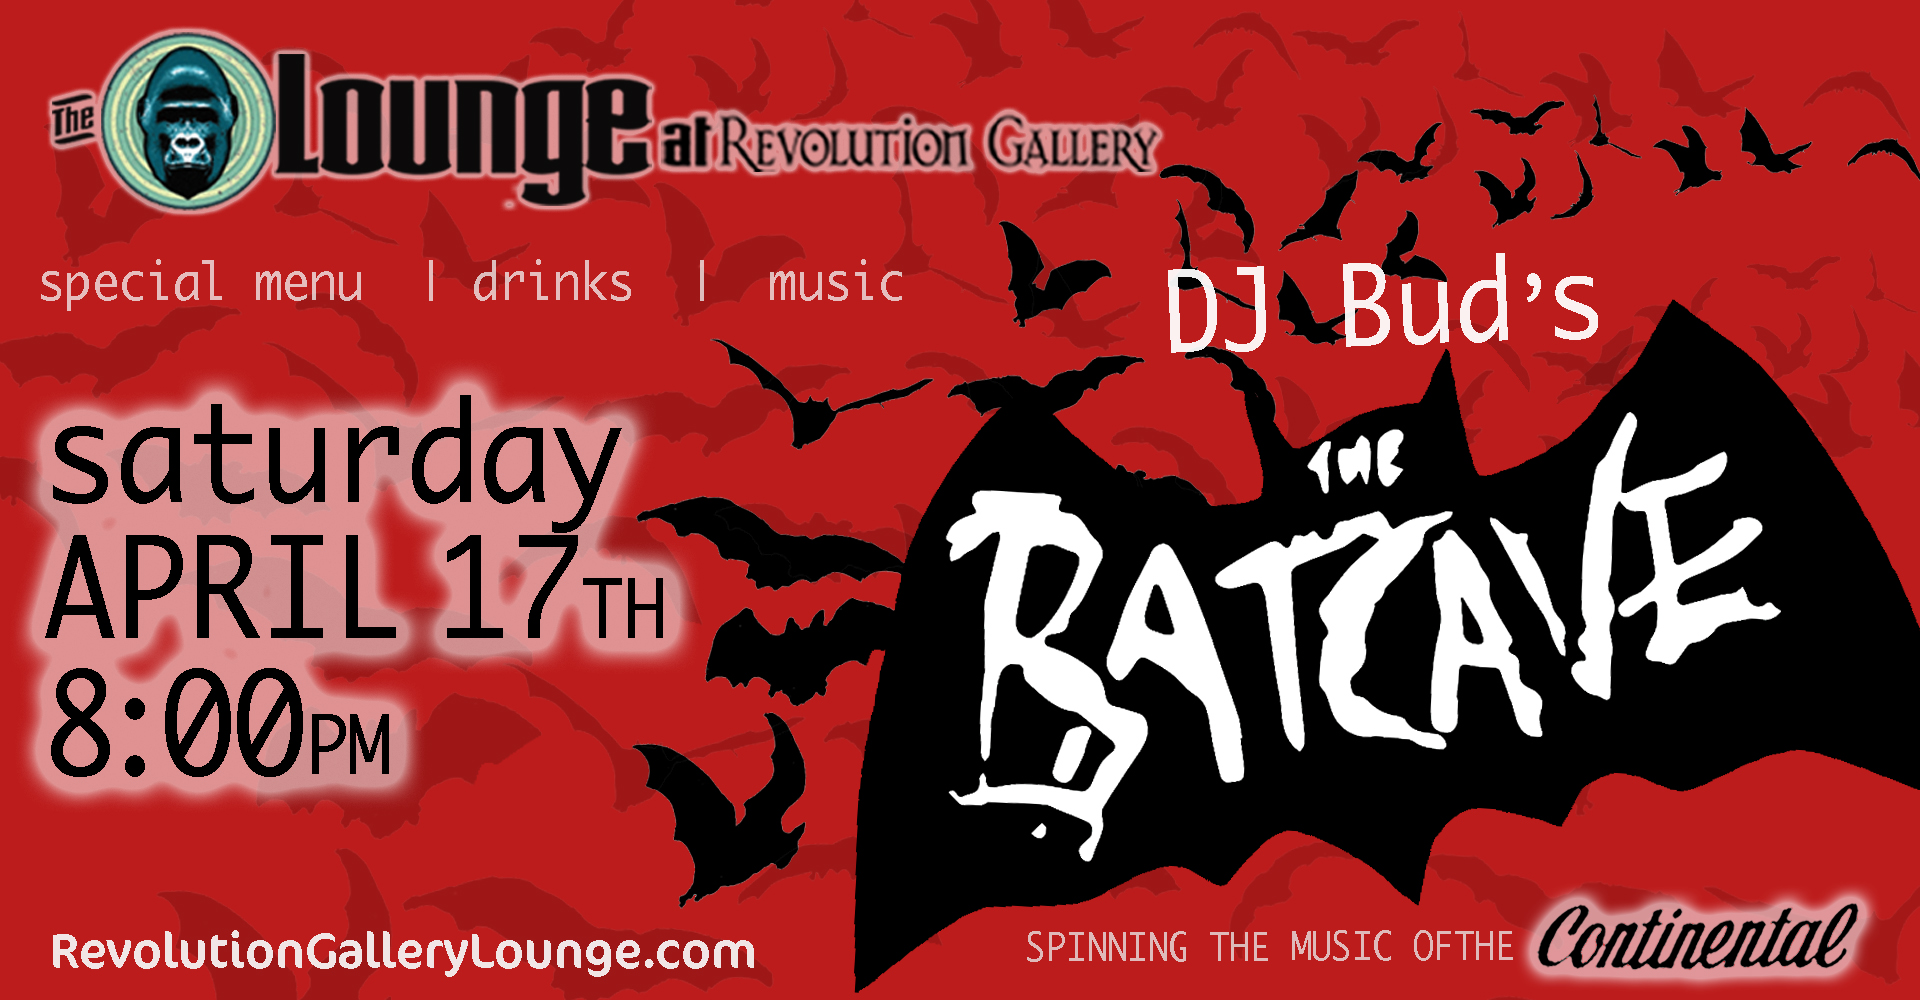 RGL_BATCAVE_BUDREDDING_APRIL17th